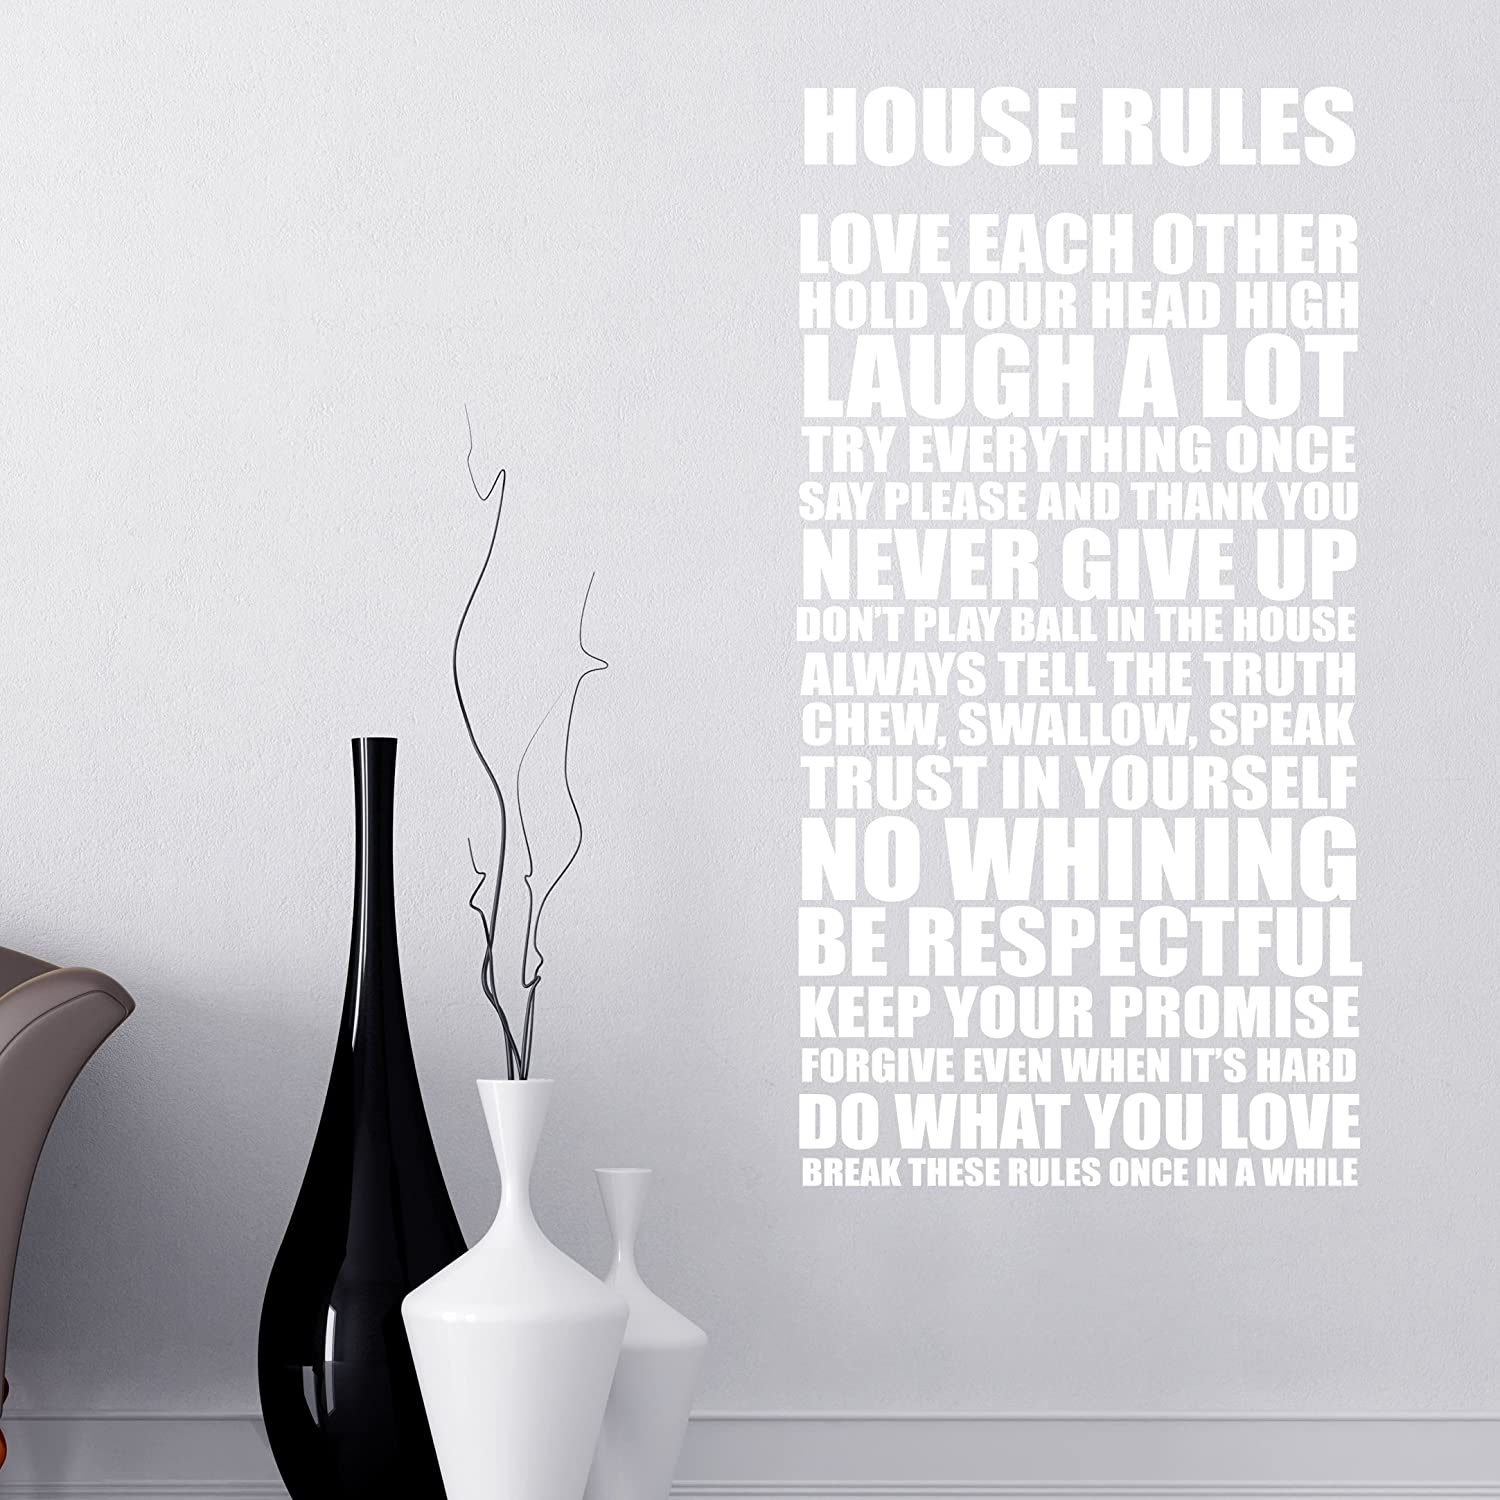 house rules family words quotes wall stickers decals motto white house rules family words quotes wall stickers decals motto white amazon co uk kitchen home